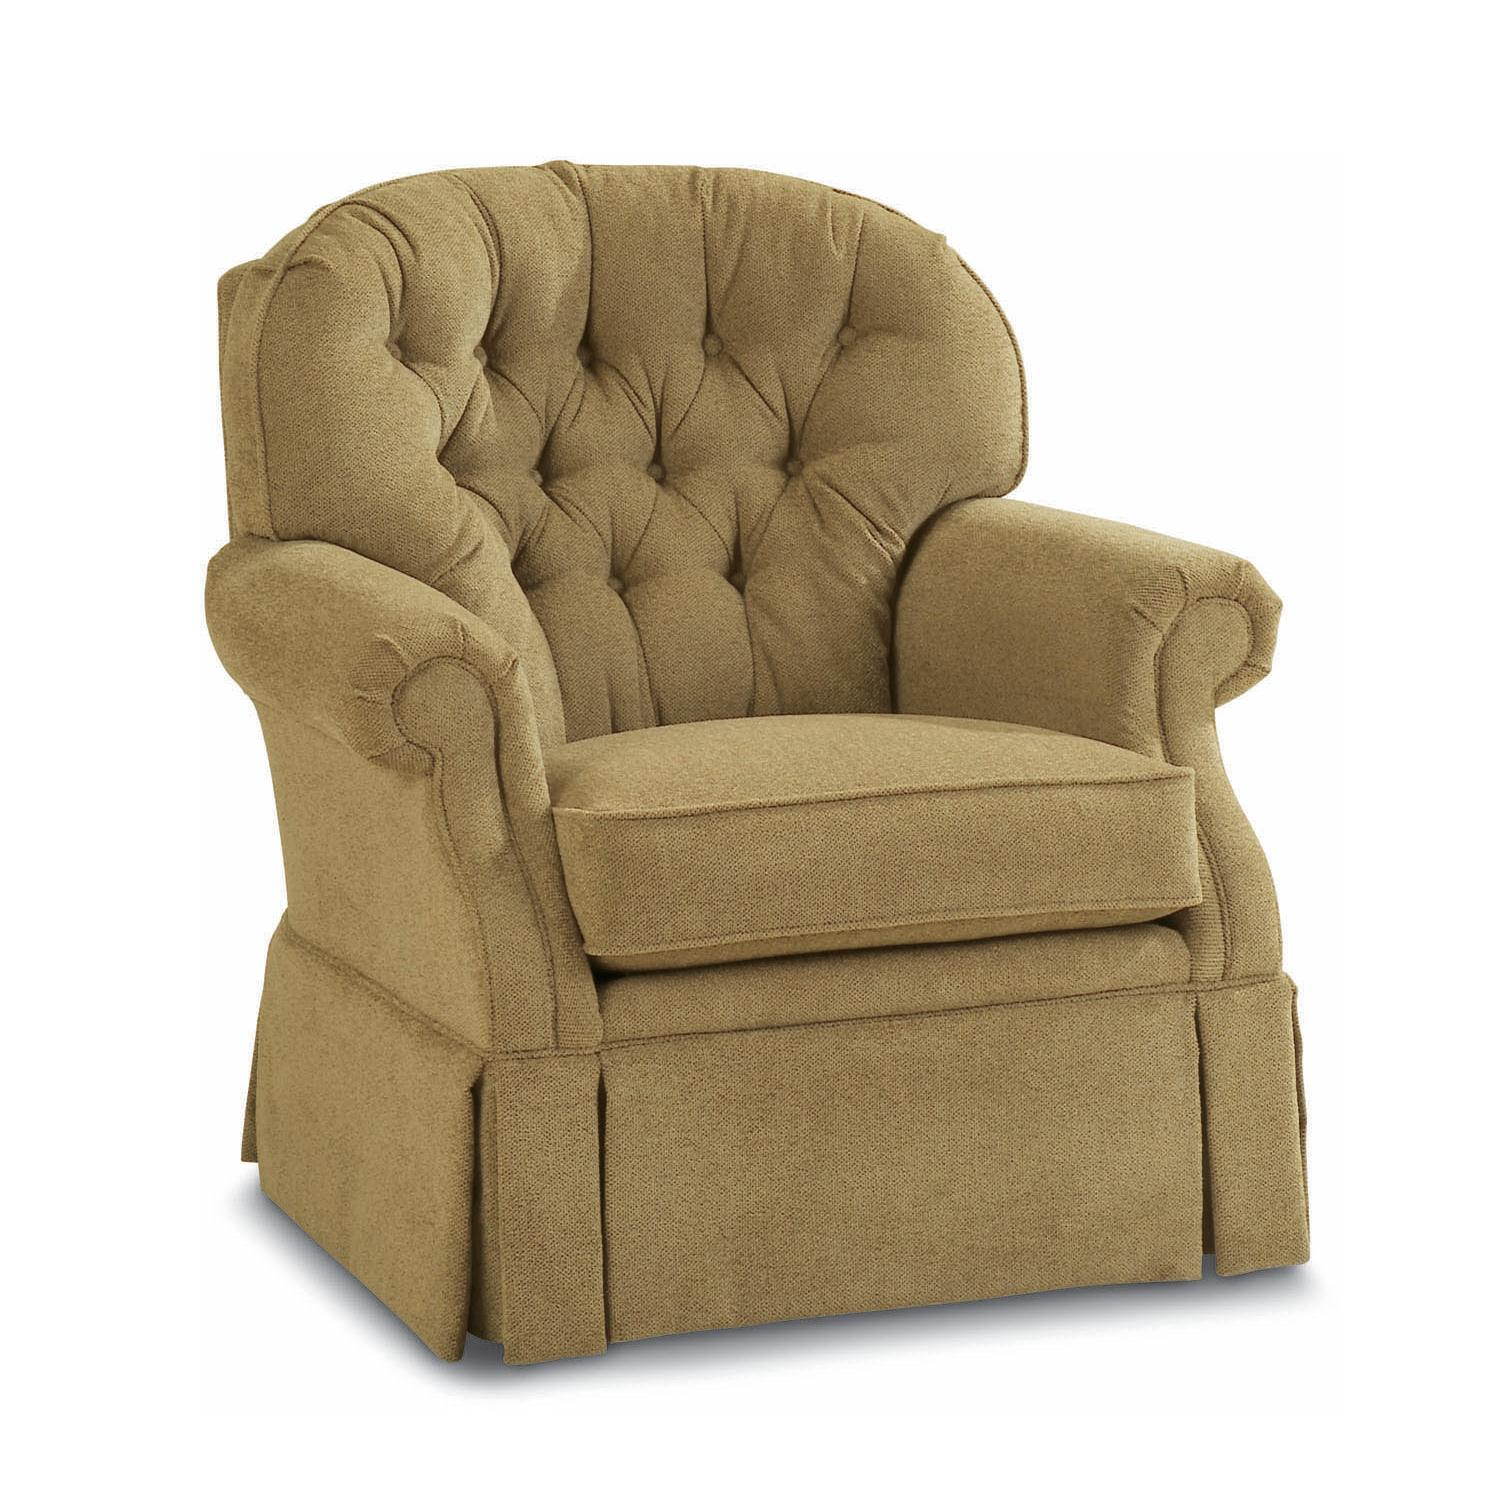 Lodge Style Leather Chairs